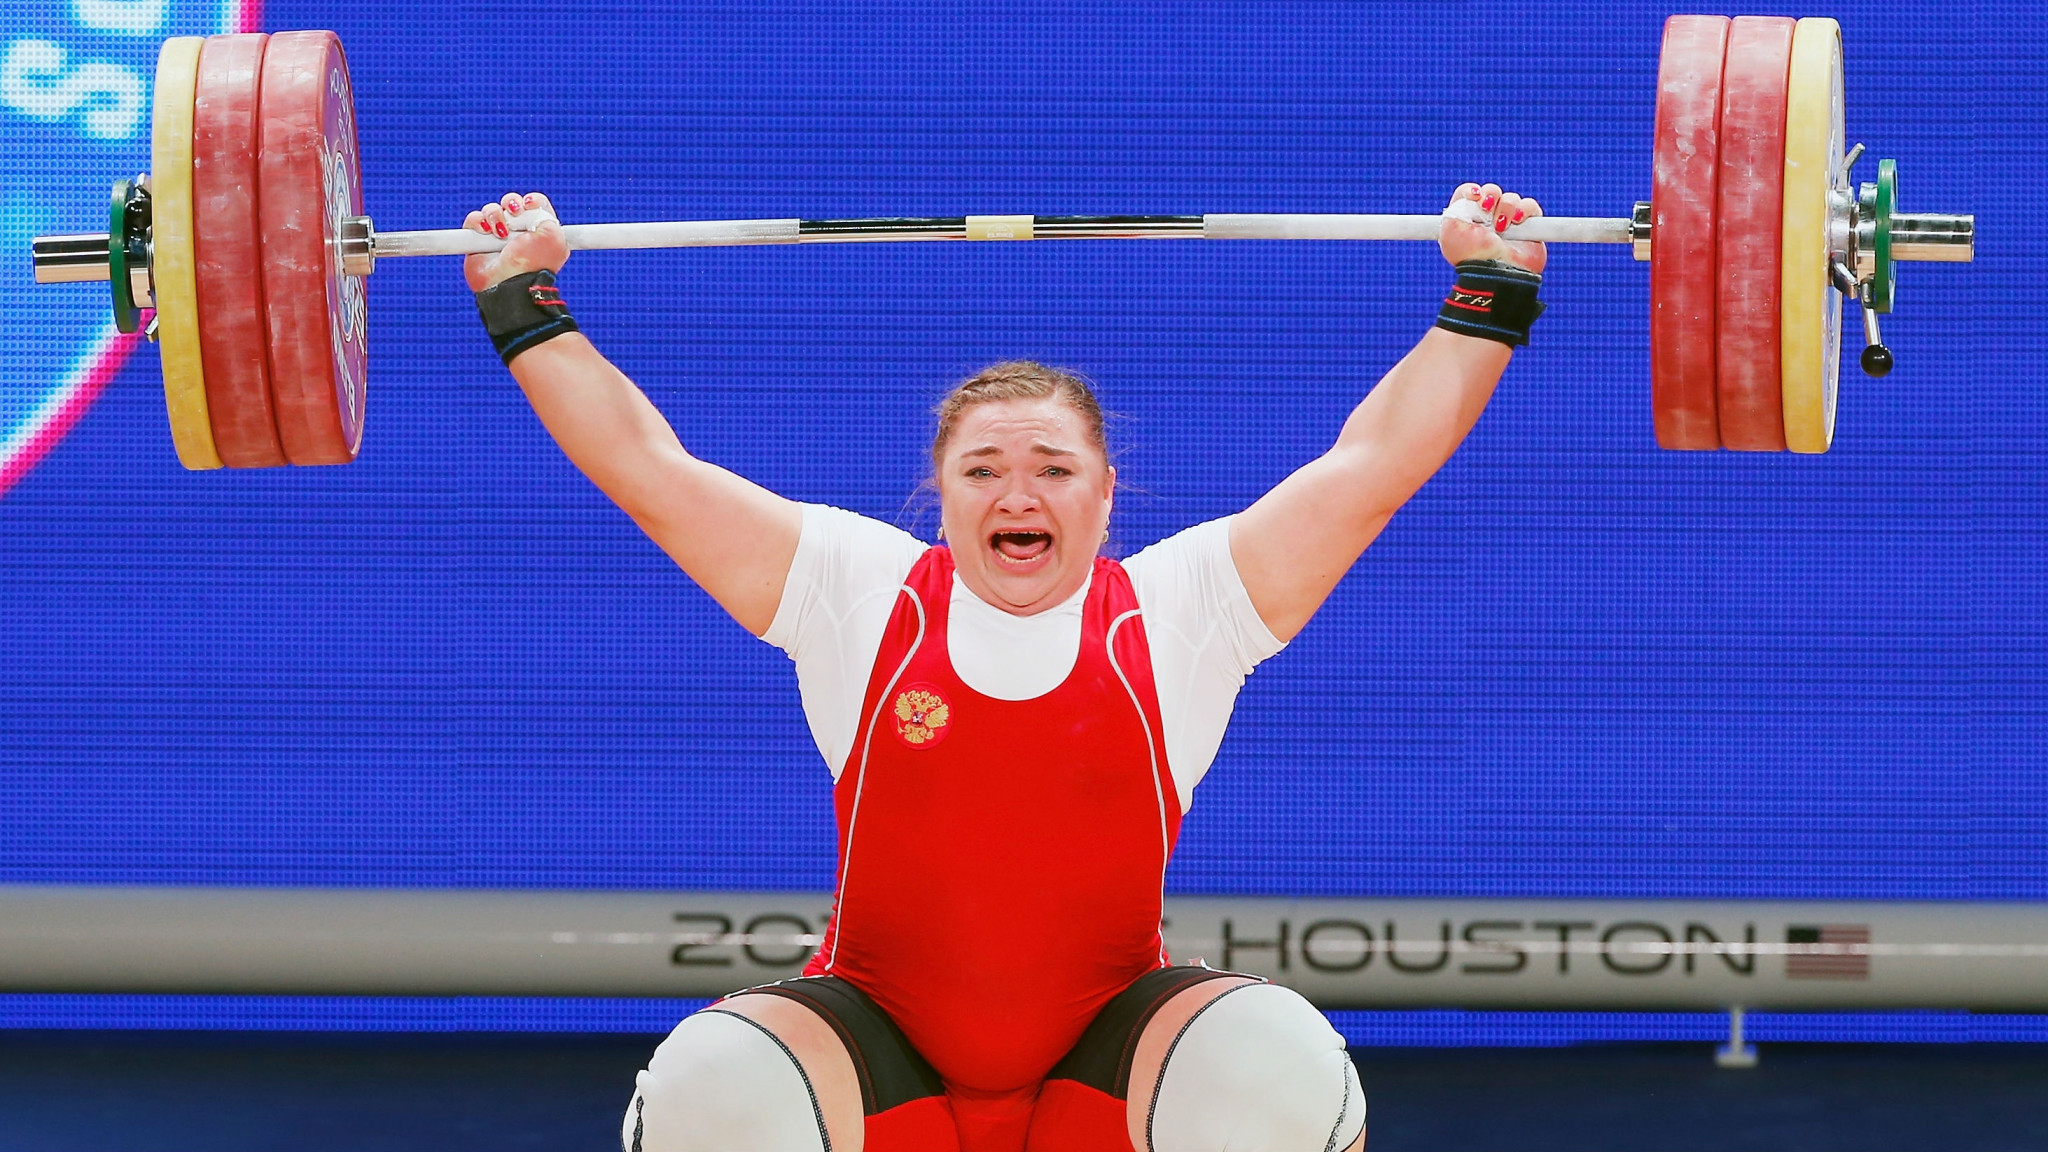 Weightlifting has already introduced restrictions on quota places from countries with repeated doping offences ©Getty Images